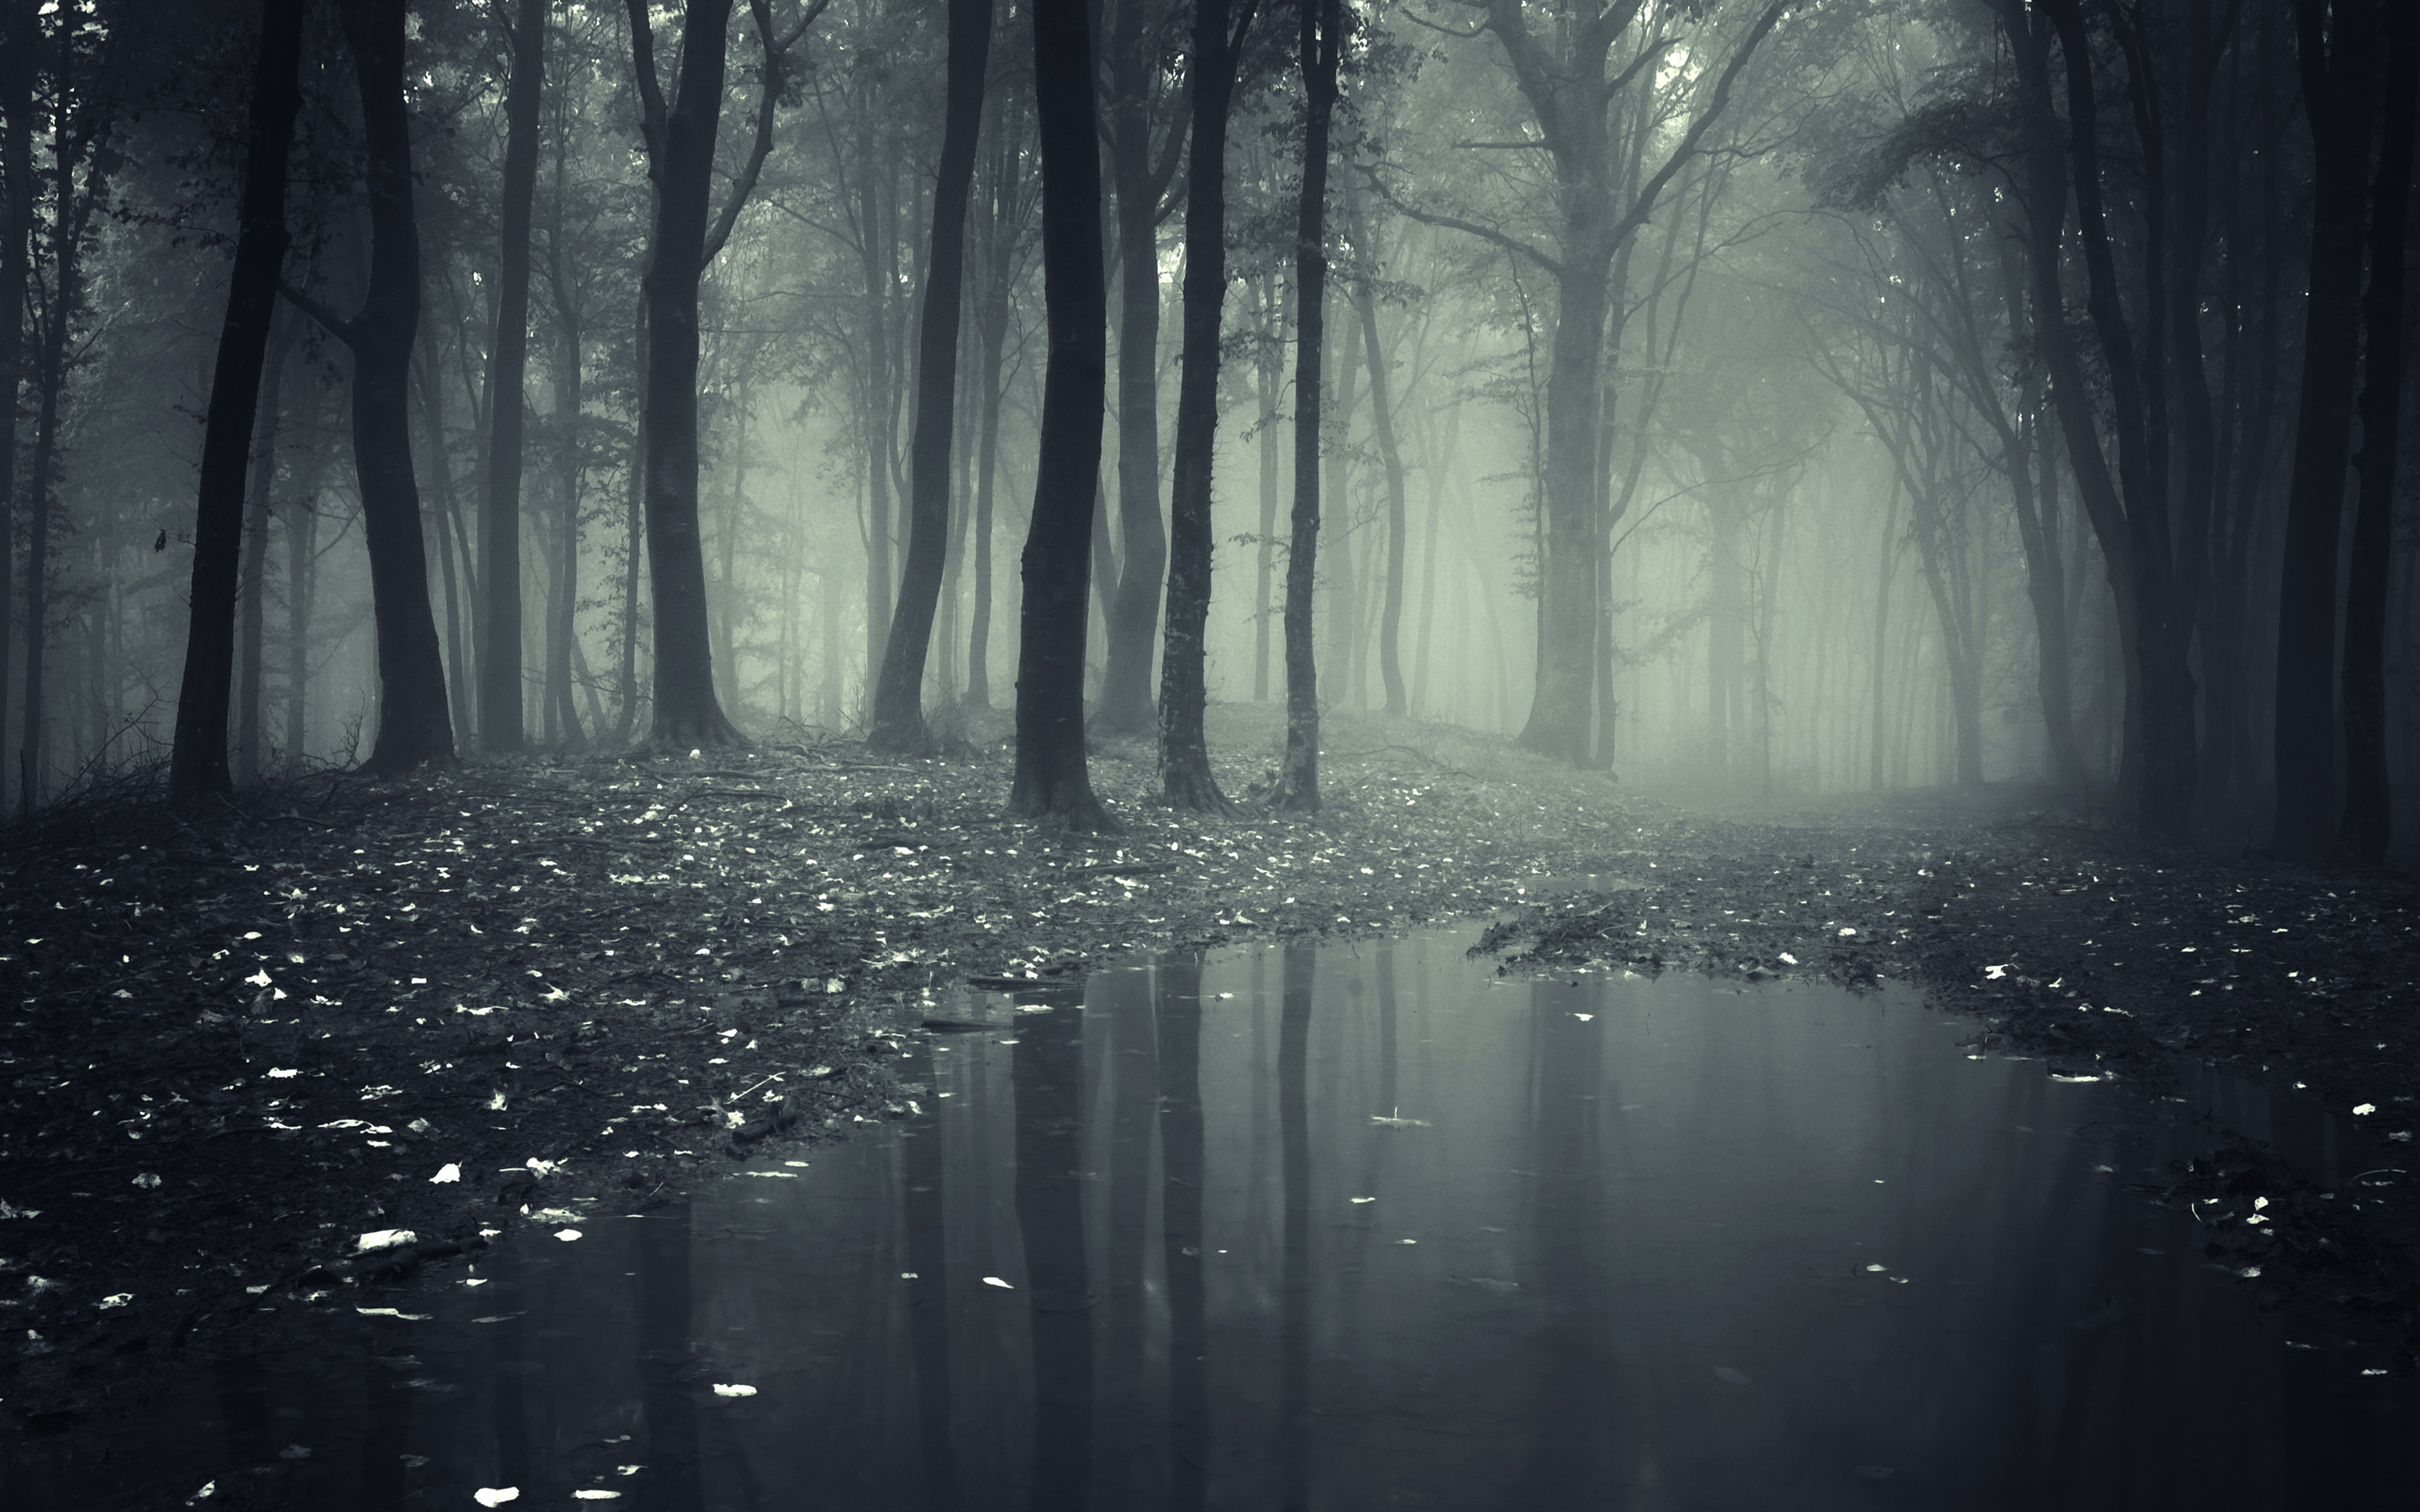 Creepy Dark Forest HD Wallpaper 2880x1800